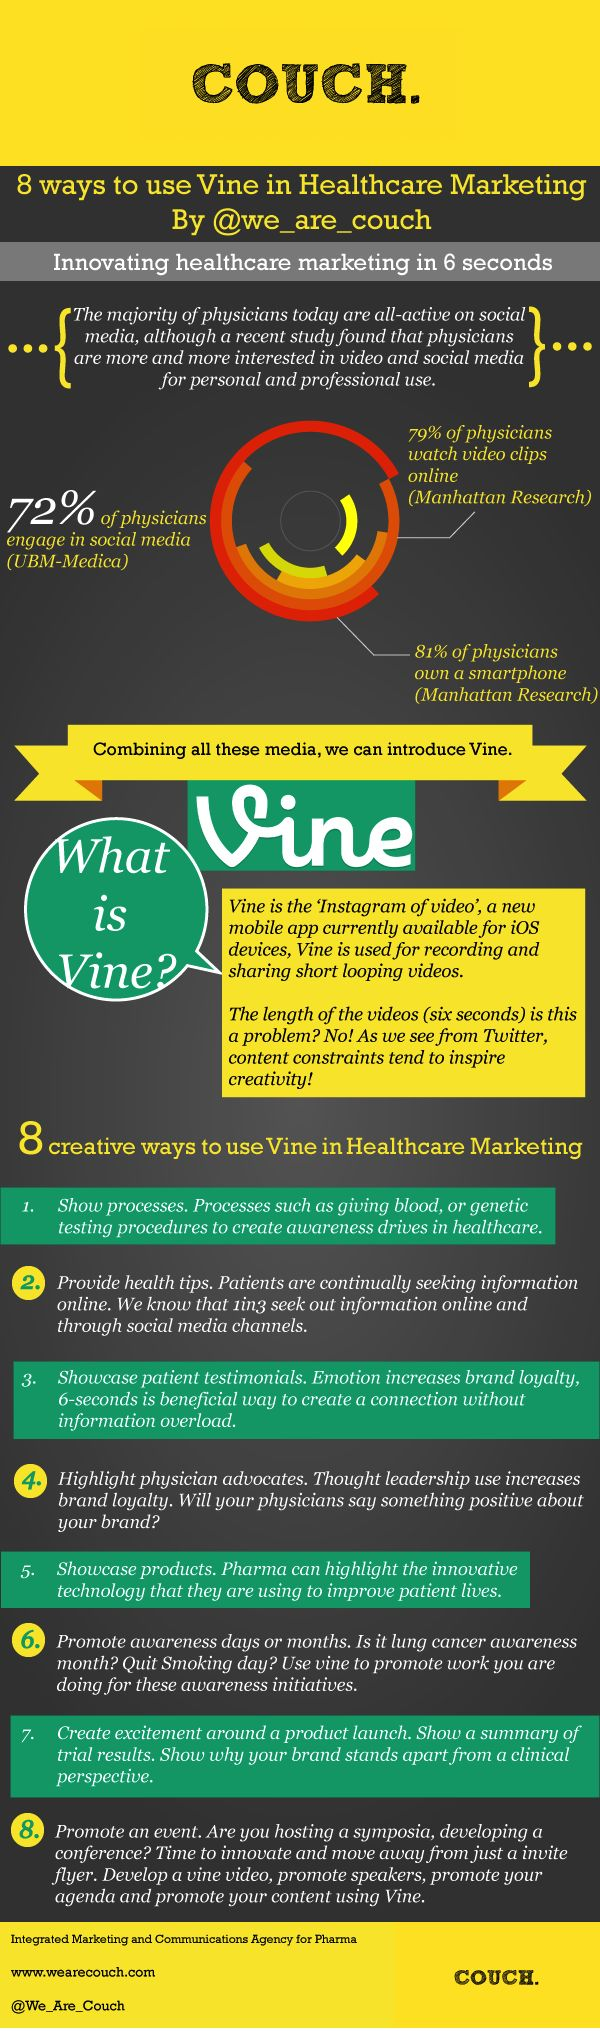 8 ways to use Vine in Healthcare Marketing -- Infographic